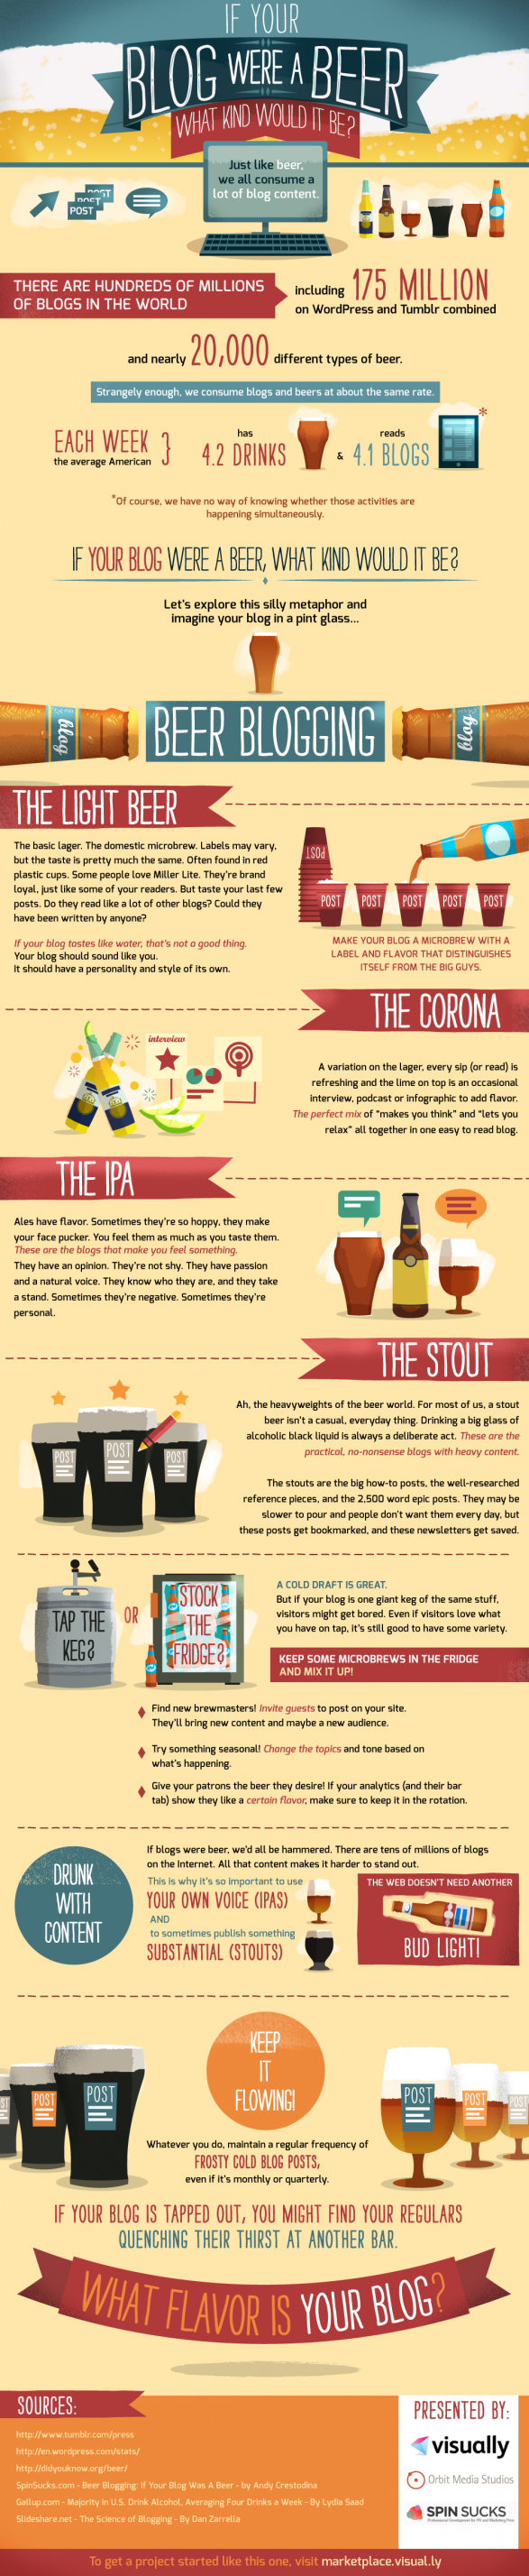 If Your Blog Were A Beer...